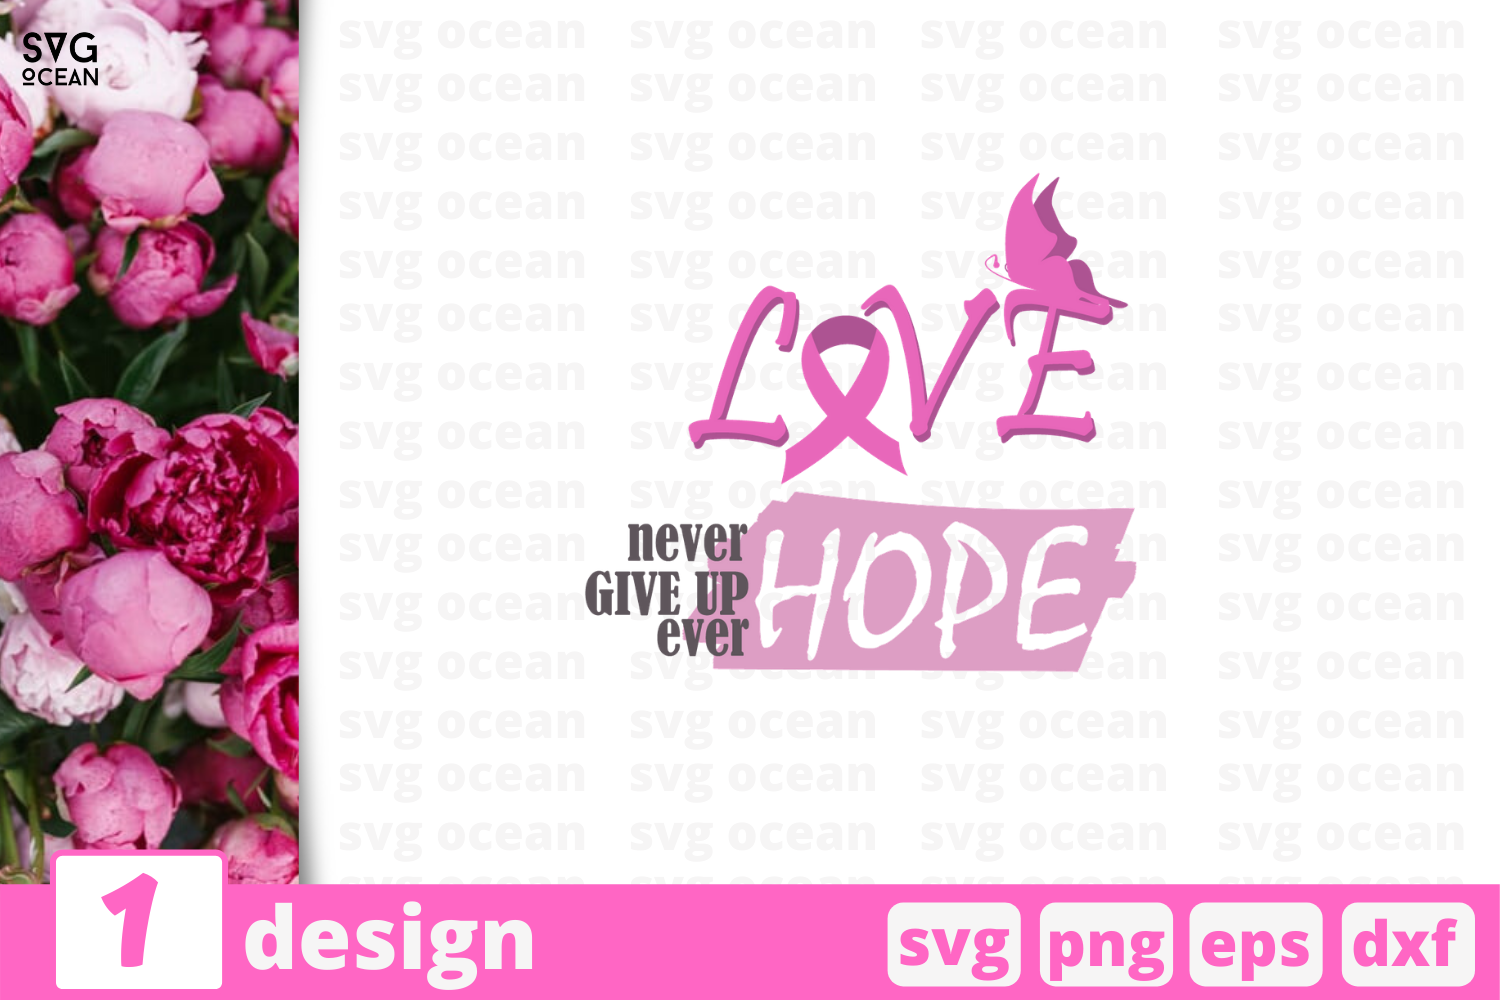 Download Free Love Hope Quote Graphic By Svgocean Creative Fabrica for Cricut Explore, Silhouette and other cutting machines.